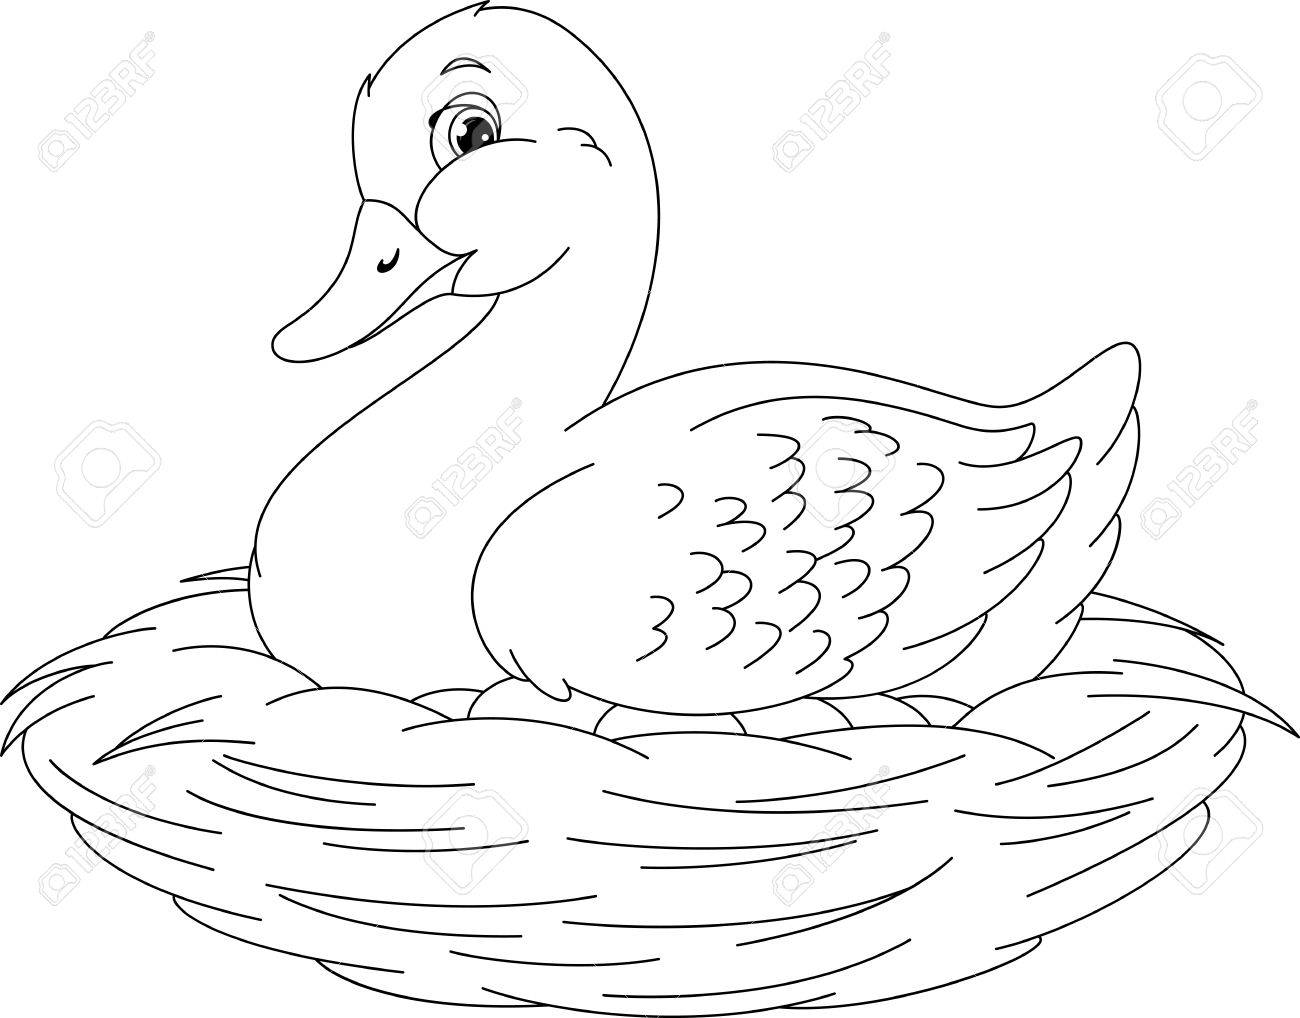 Duck Coloring Page Royalty Free Cliparts, Vectors, And Stock ...